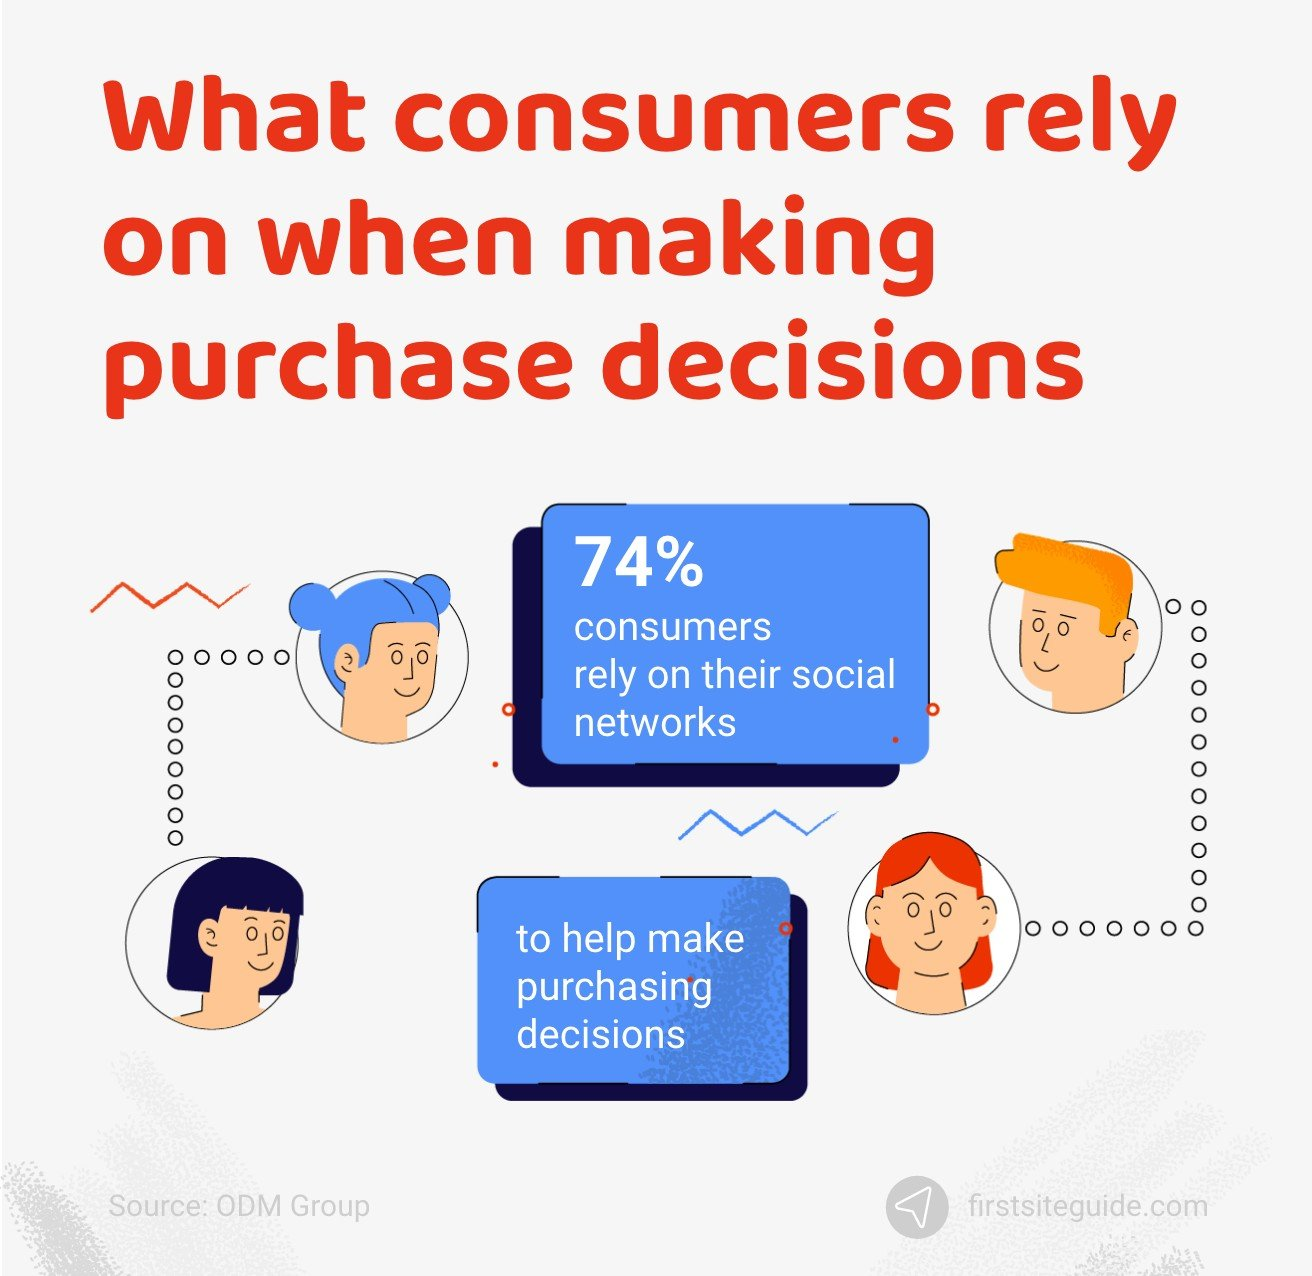 What consumers rely on when making purchase decisions